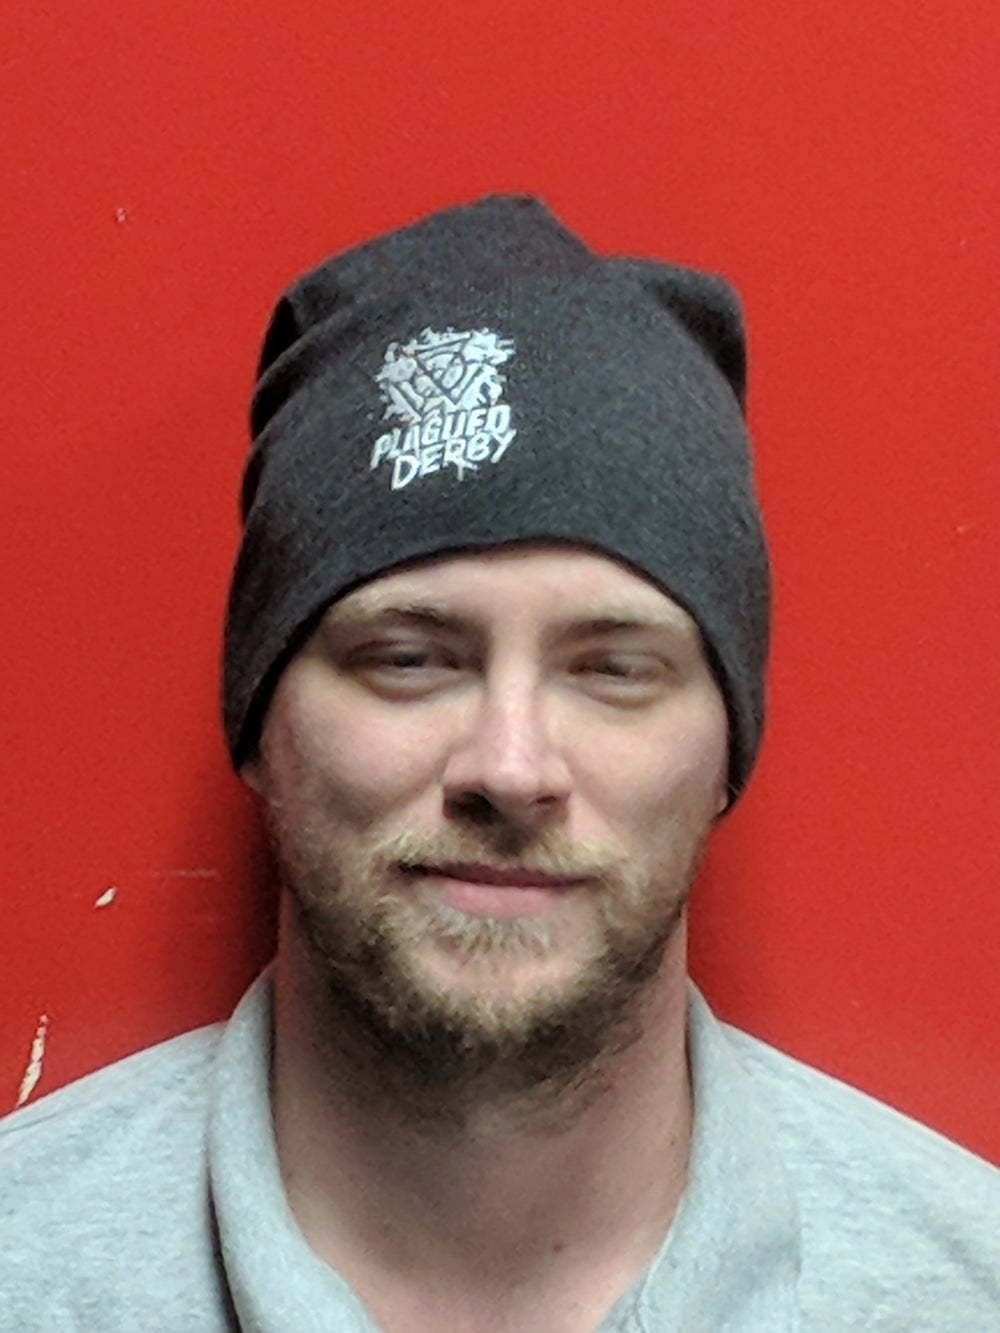 Image of Plagued Derby Slouch Beanie